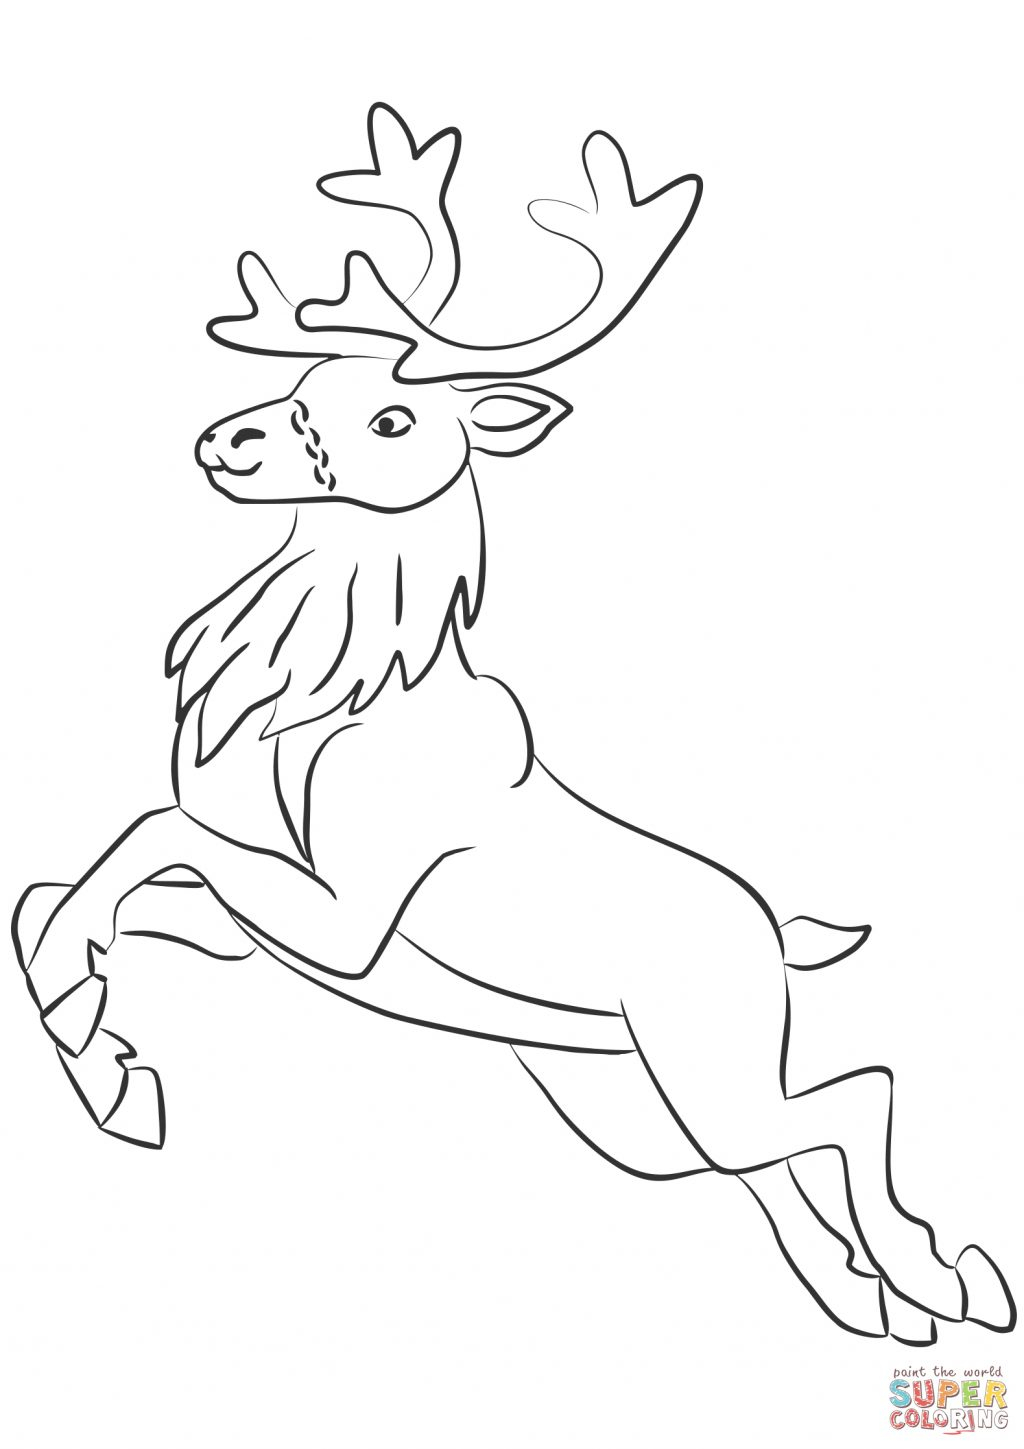 Santa And Rudolph Coloring Pages Coloring Book 48 Reindeer Coloring Pages Image Ideas Cute